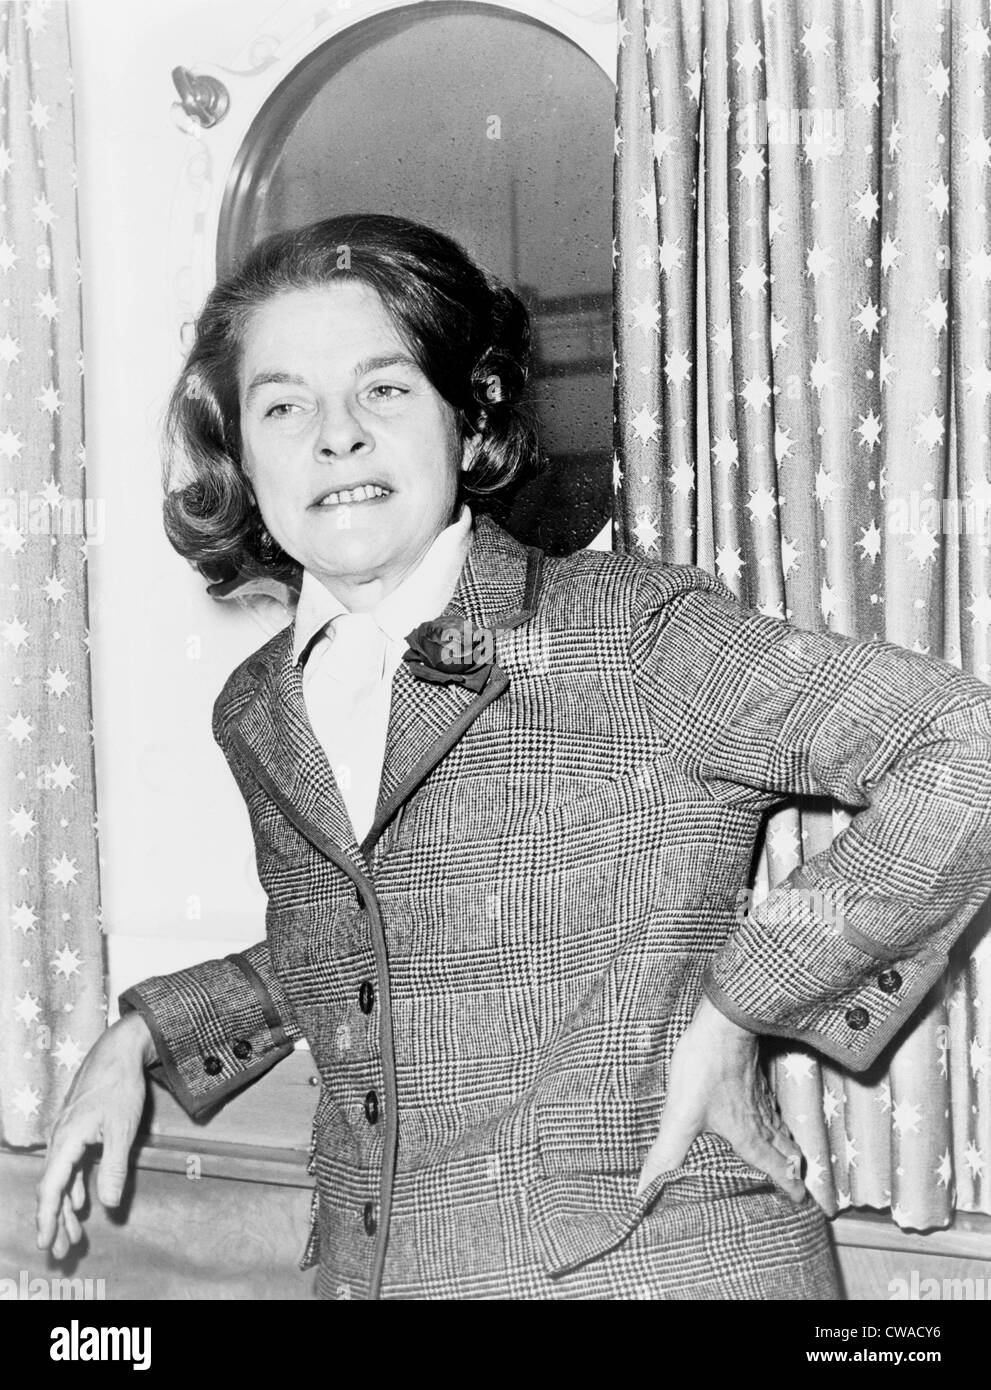 Mary McCarthy, 1912-1989, American author best known for her autobiography 'Memories of a Catholic Girlhood' - Stock Image